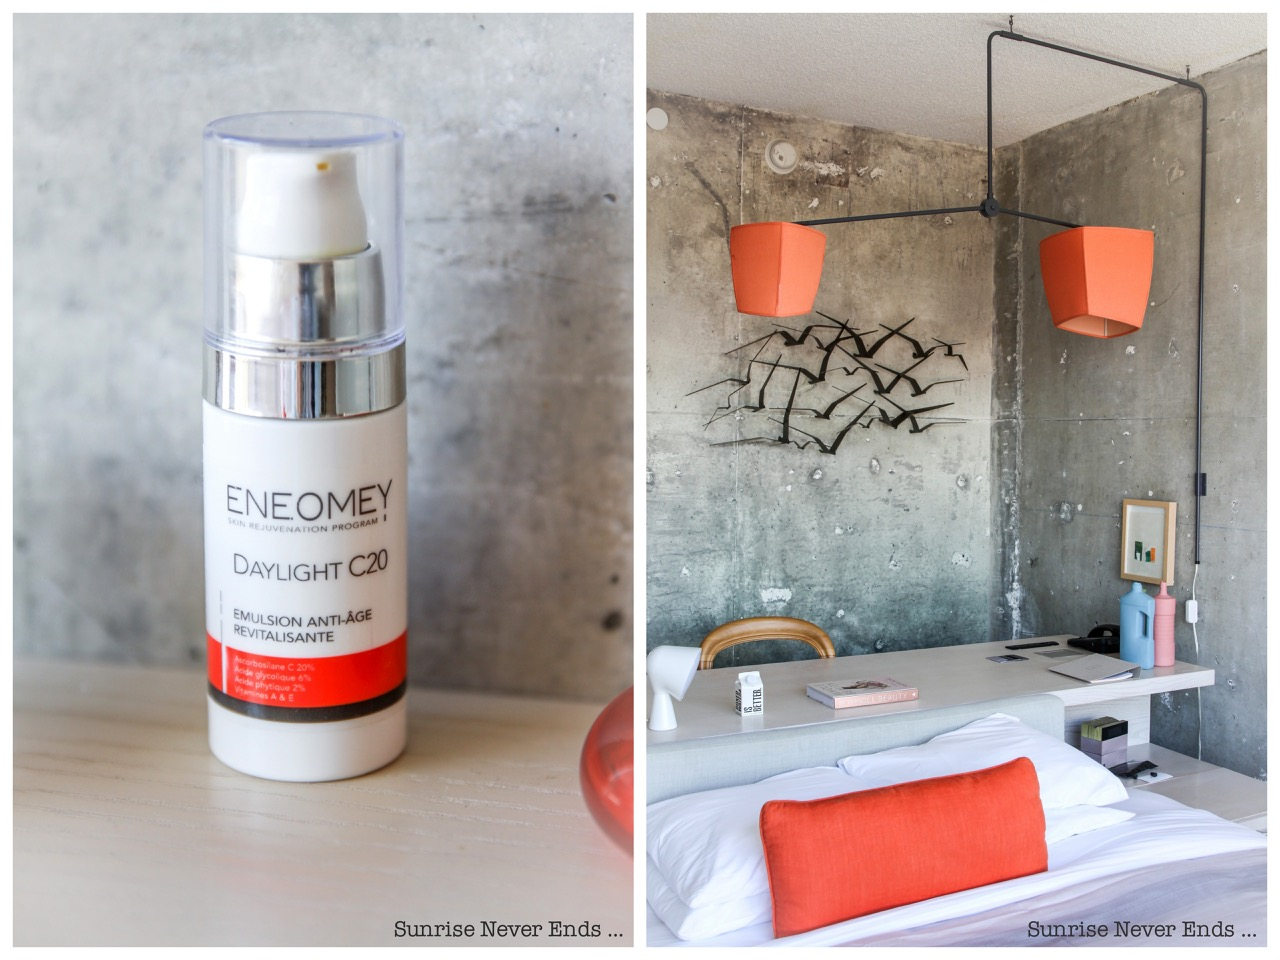 acide glycolique,anti-age,cosmetics,cosmétiques,the line,los angeles,koreatown,hotel,travel,travel blogger, beauty blogger,beauté,beauty,eneomey,